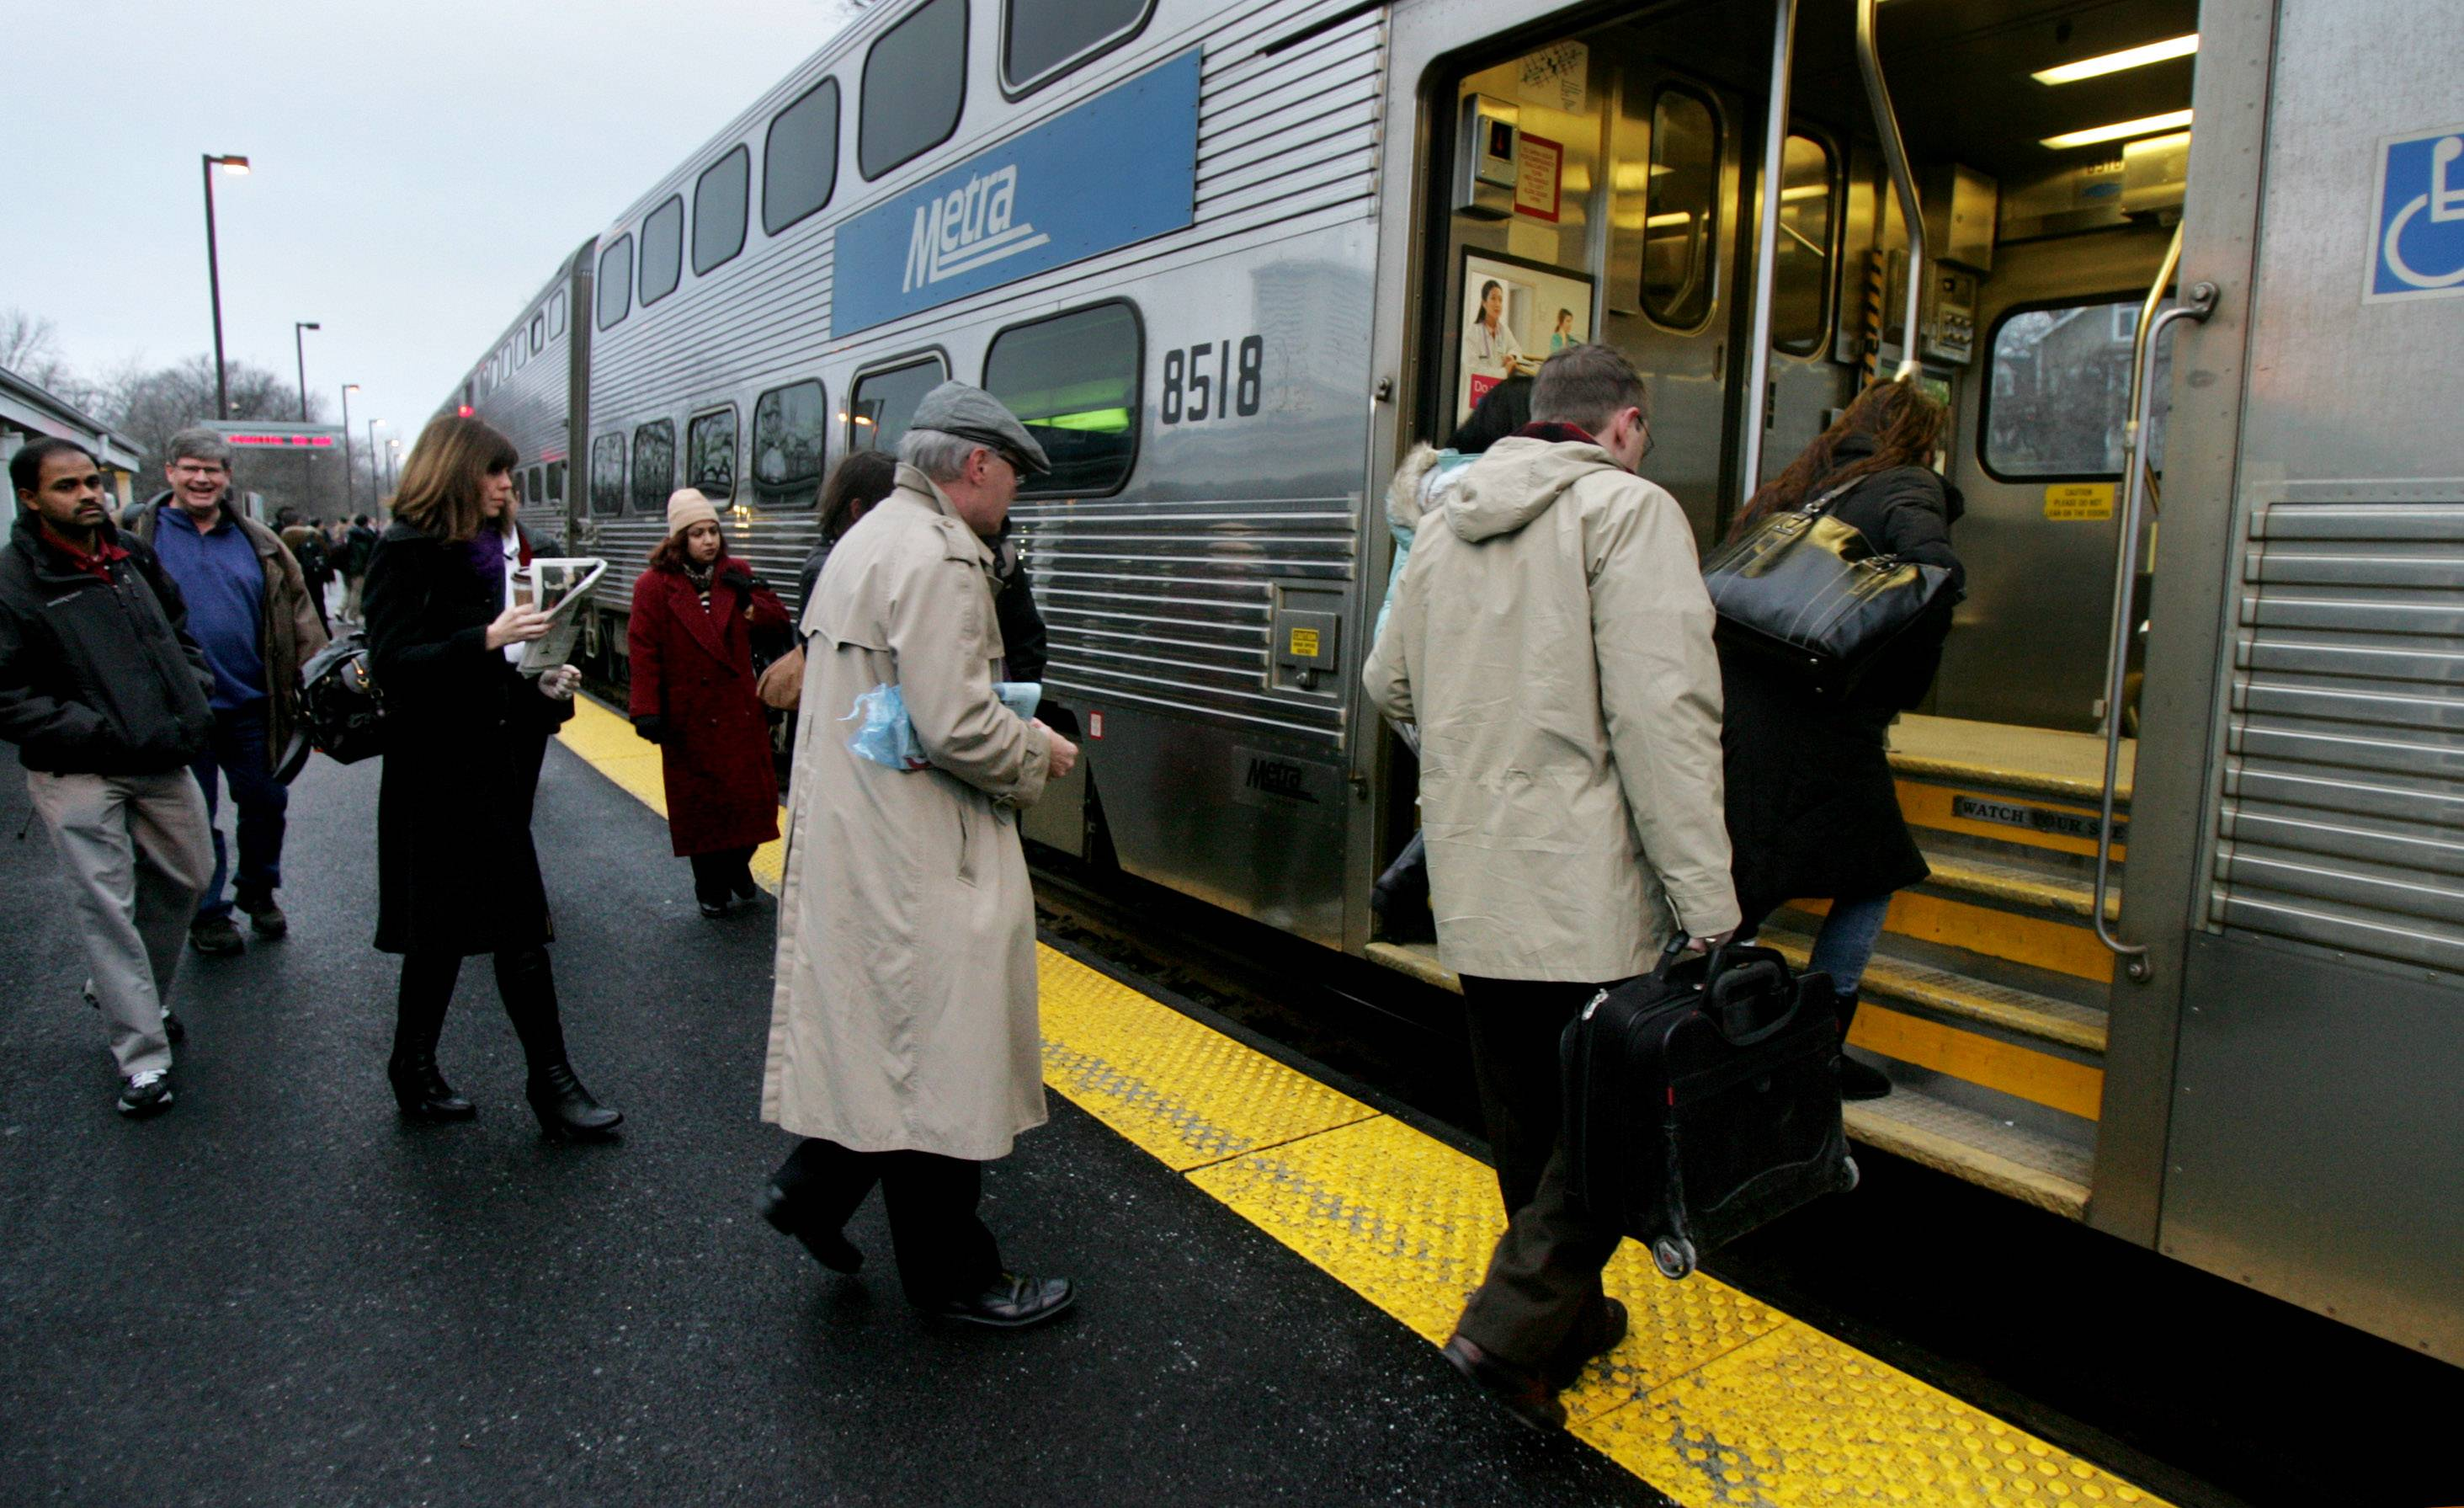 Feds find Metra 'generally compliant' but cite safety issues